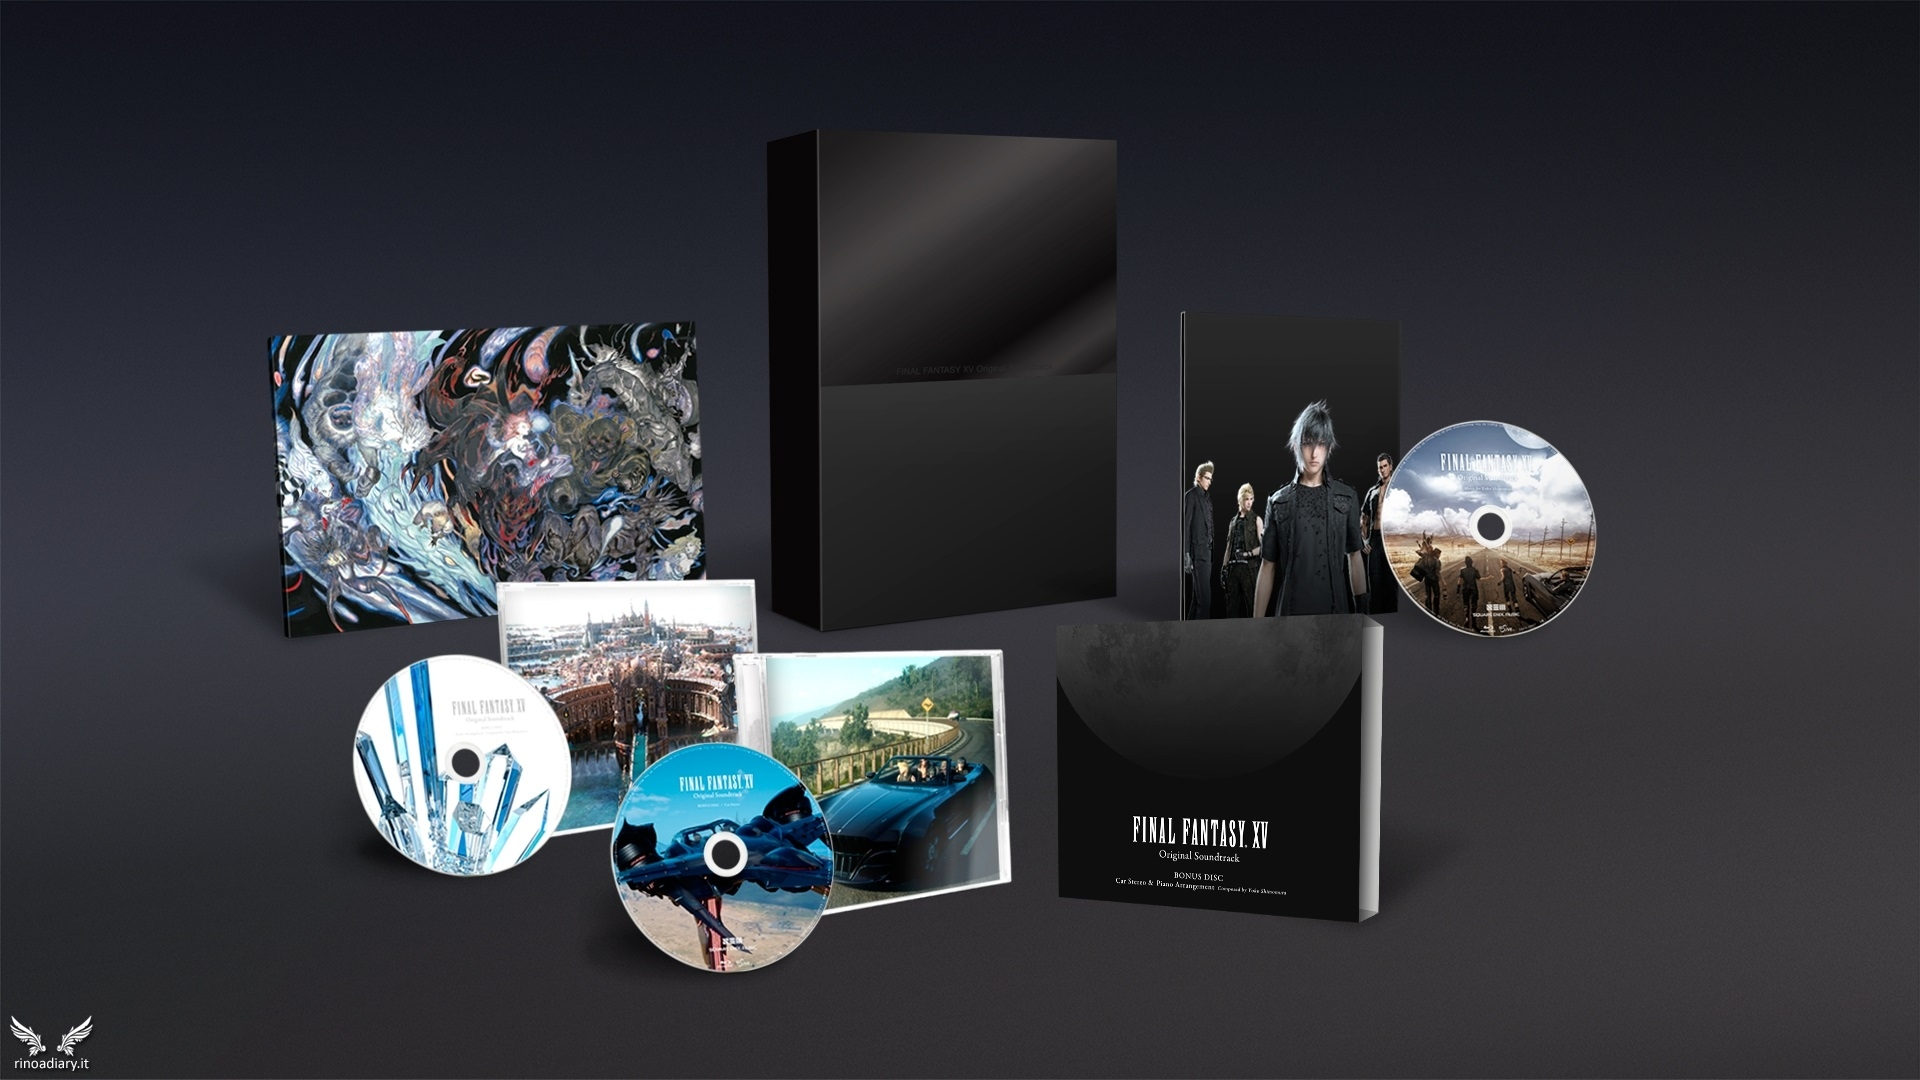 Final Fantasy XV OST Limited Edition